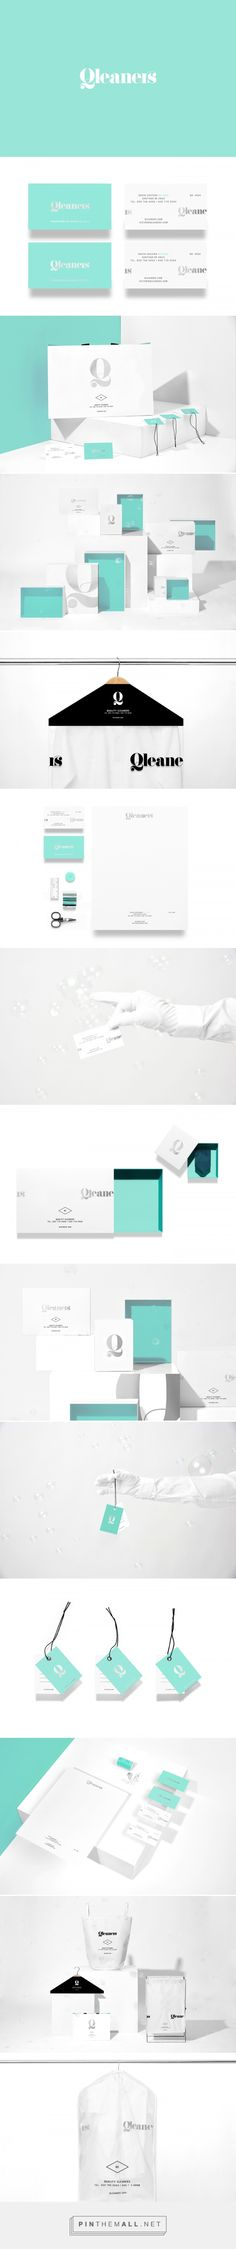 Qleaners Laundry Service Branding by Anagrama Studio | Fivestar Branding Agency – Design and Branding Agency & Curated Inspiration Gallery #branding #brand #identity #identitydesign #design #designinspiration